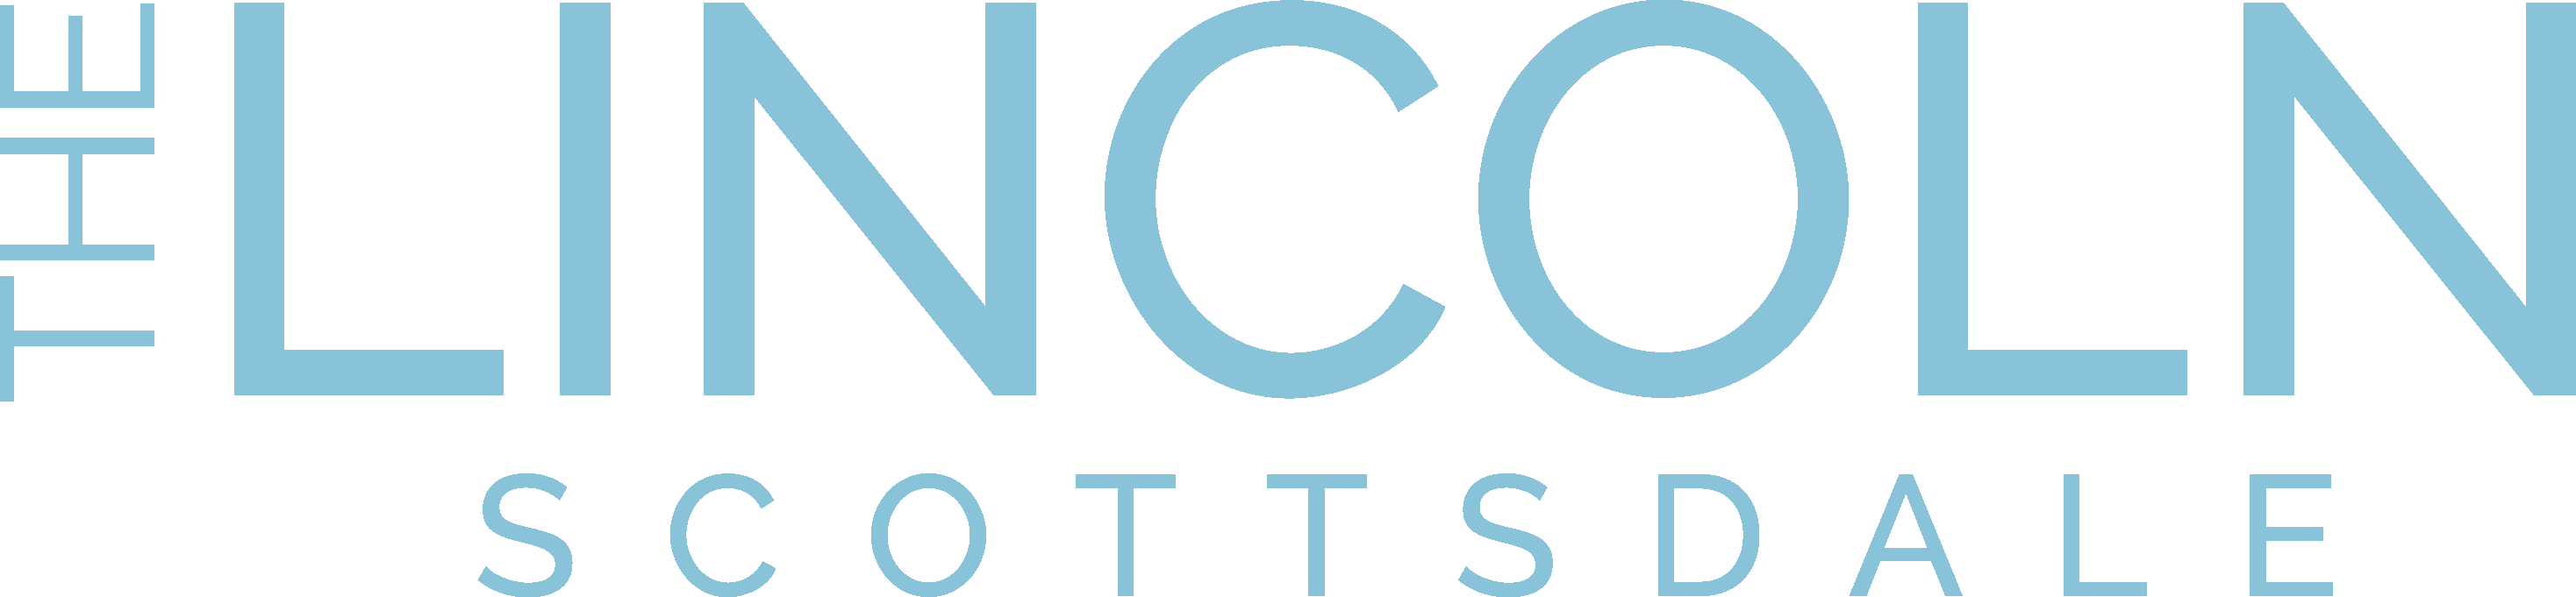 Lincoln_logo_Signage_blue